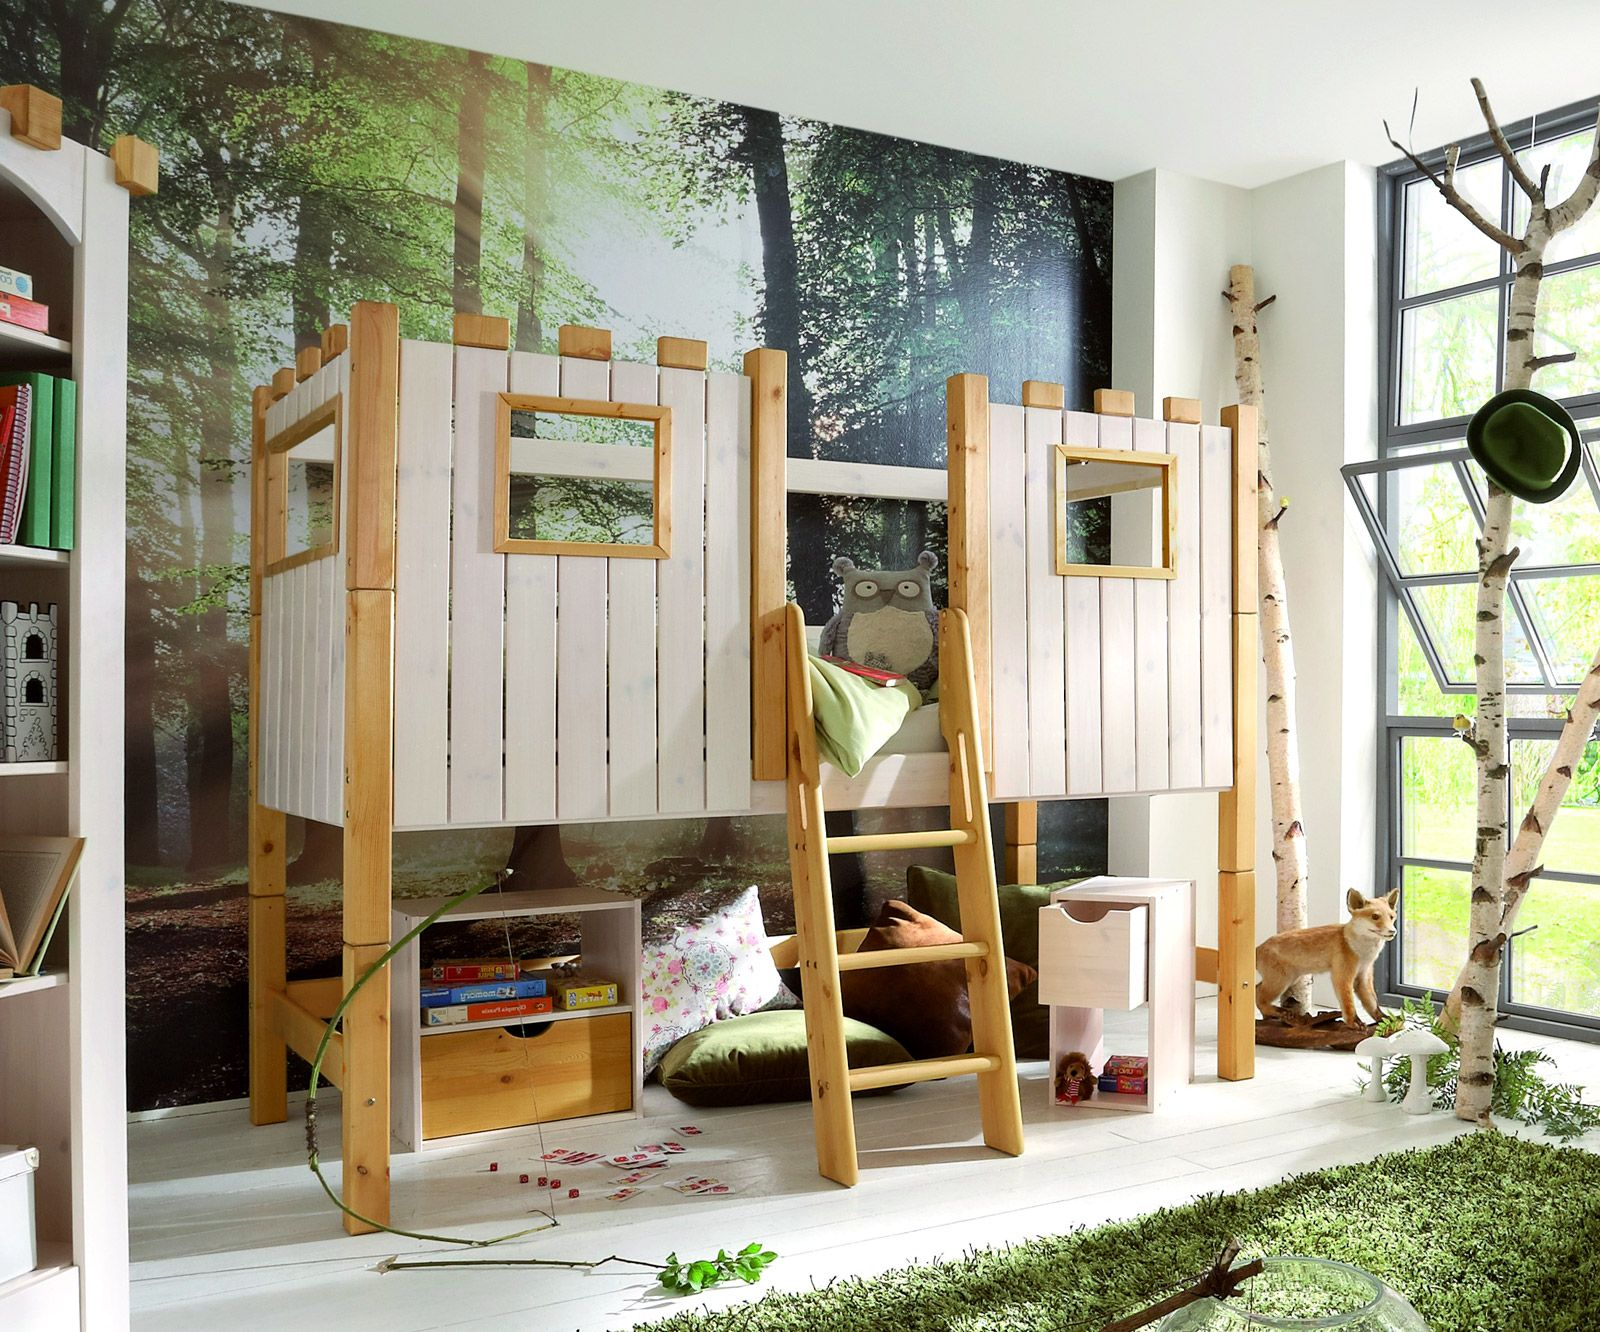 ritterburg hochbett kids paradise kinderbett hochbett ritterburg und hochbetten. Black Bedroom Furniture Sets. Home Design Ideas